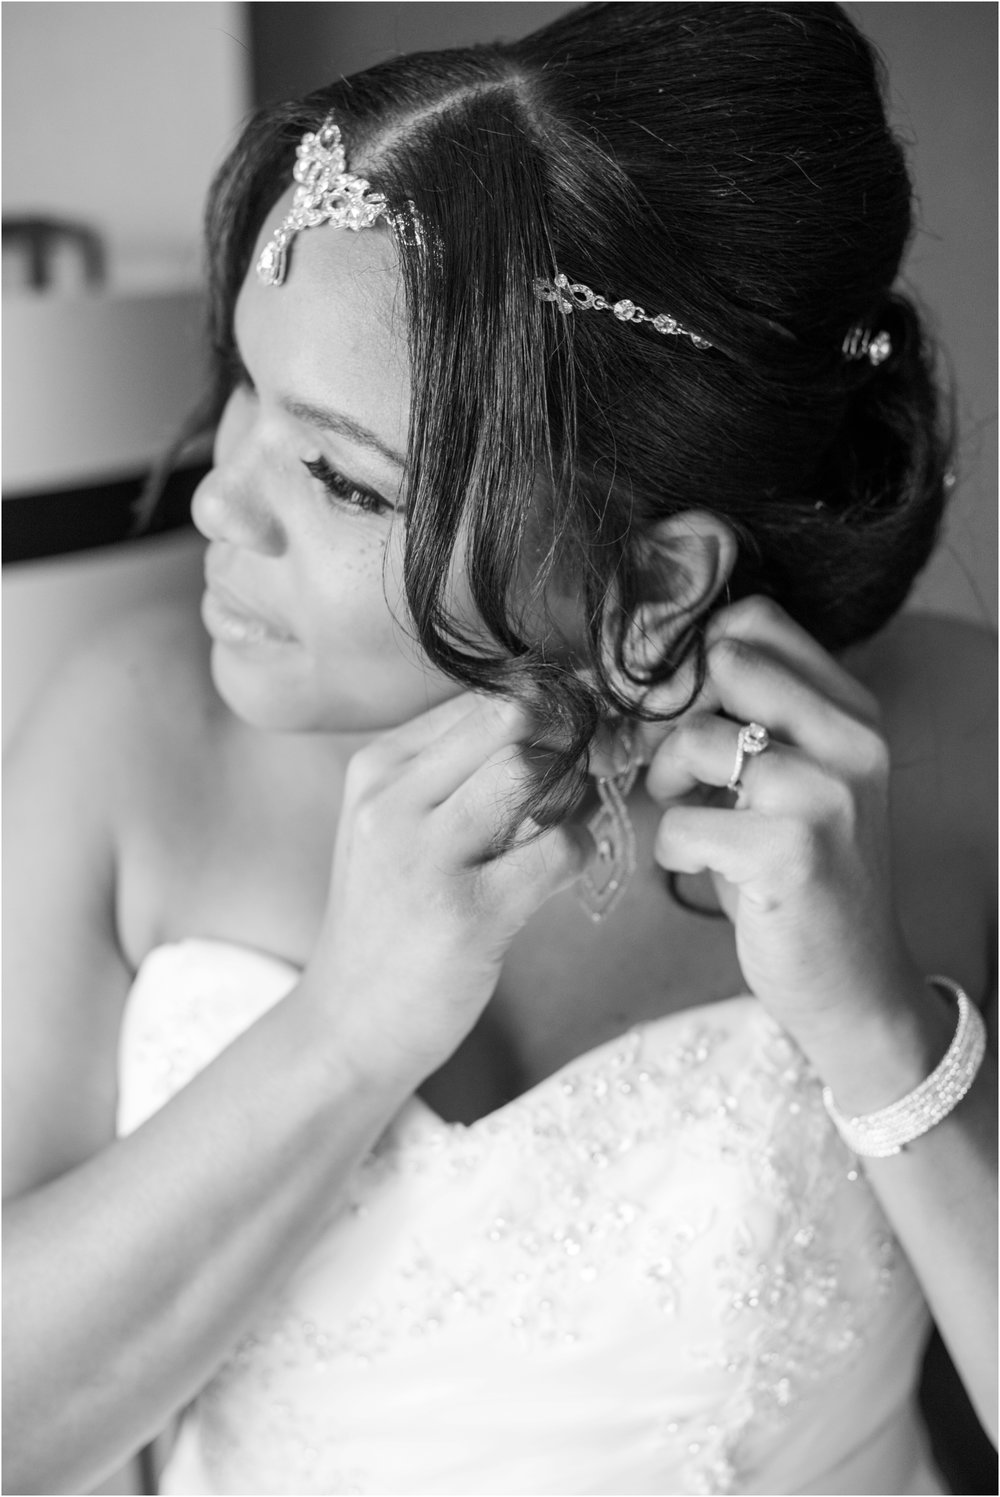 jaclyn-auletta-photography-blog-north-carolina-wedding-photographer-blogger_0008.jpg